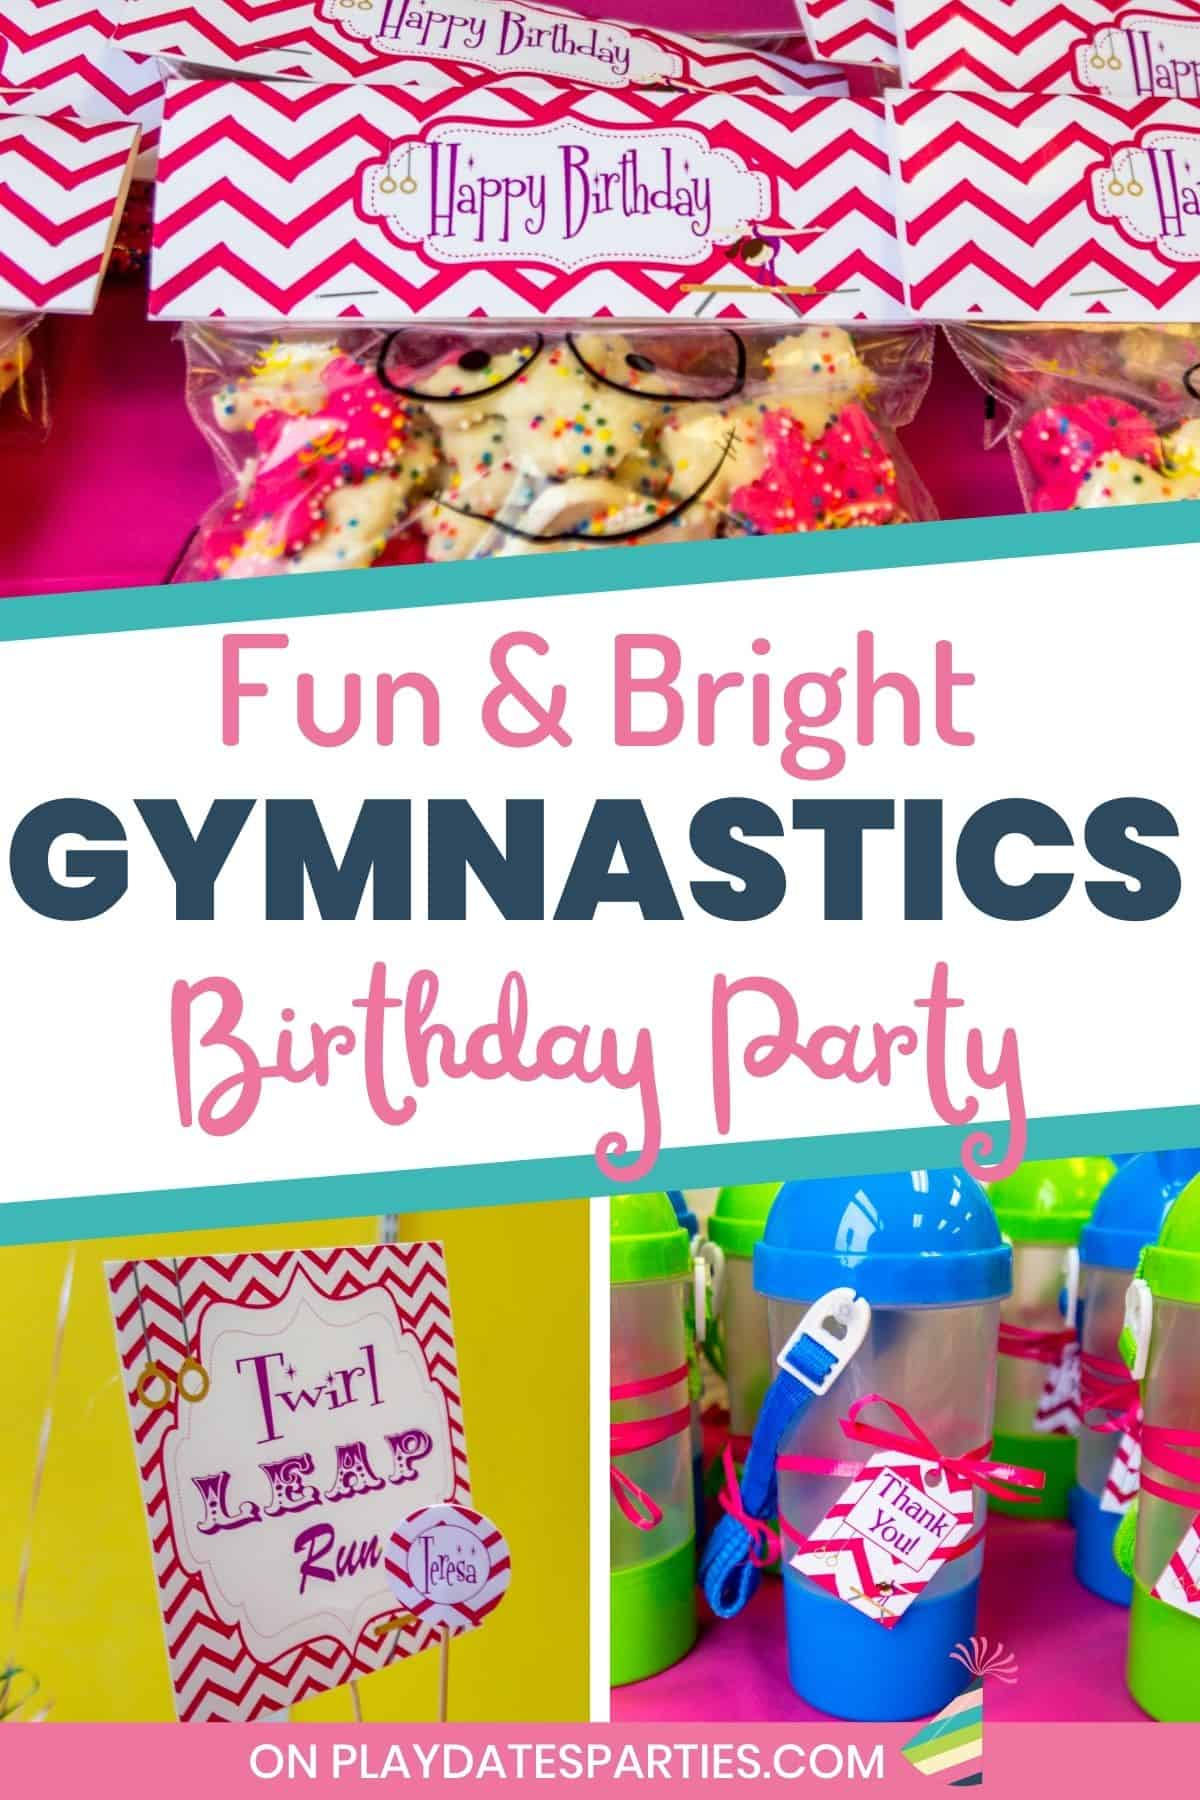 collage of party decorations with a text overlay that says fun & bright gymnastics birthday party